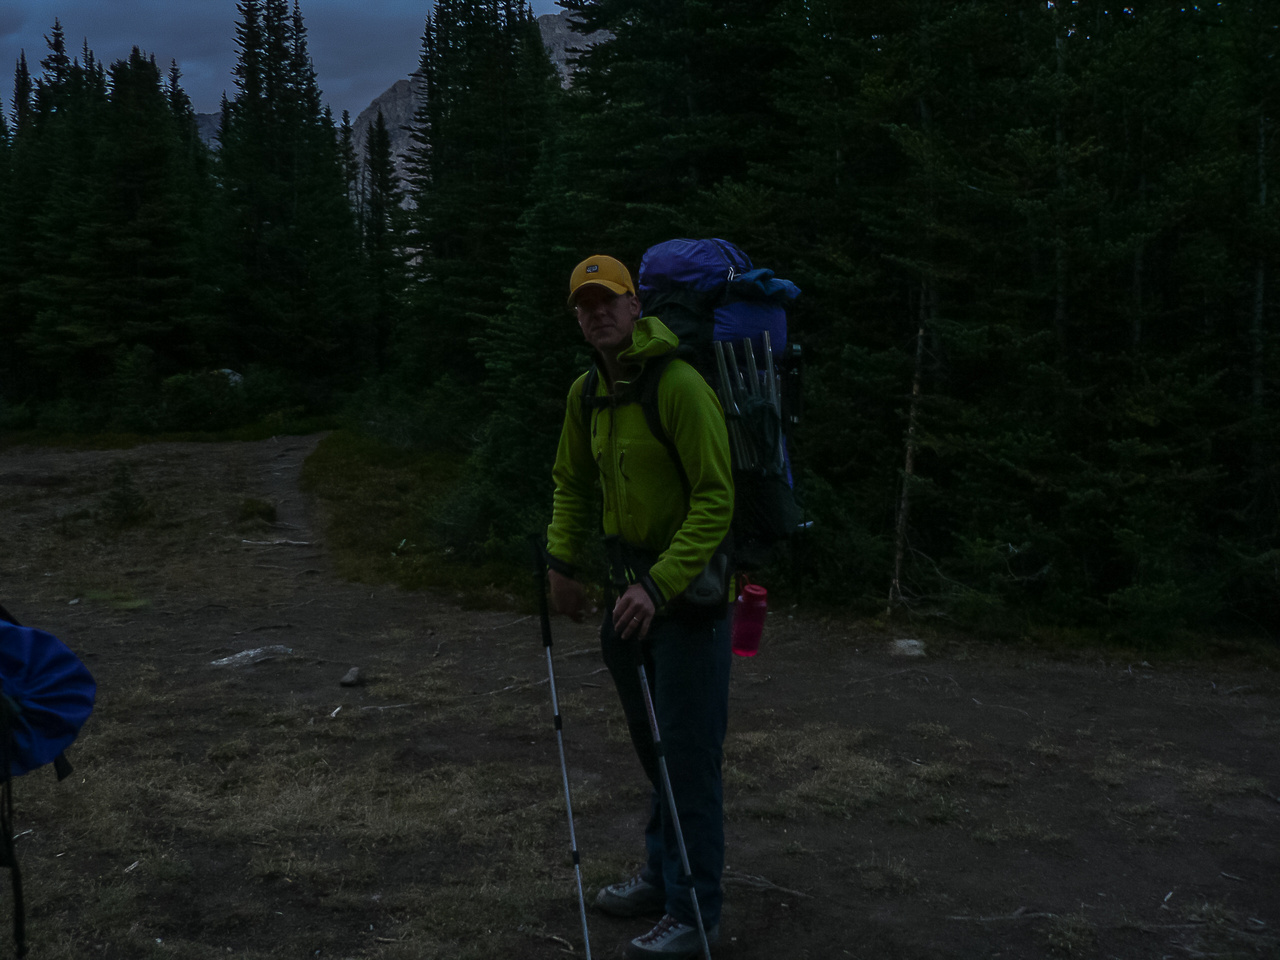 Preparing to hike out of our camp at Baker Lake in early morning light.